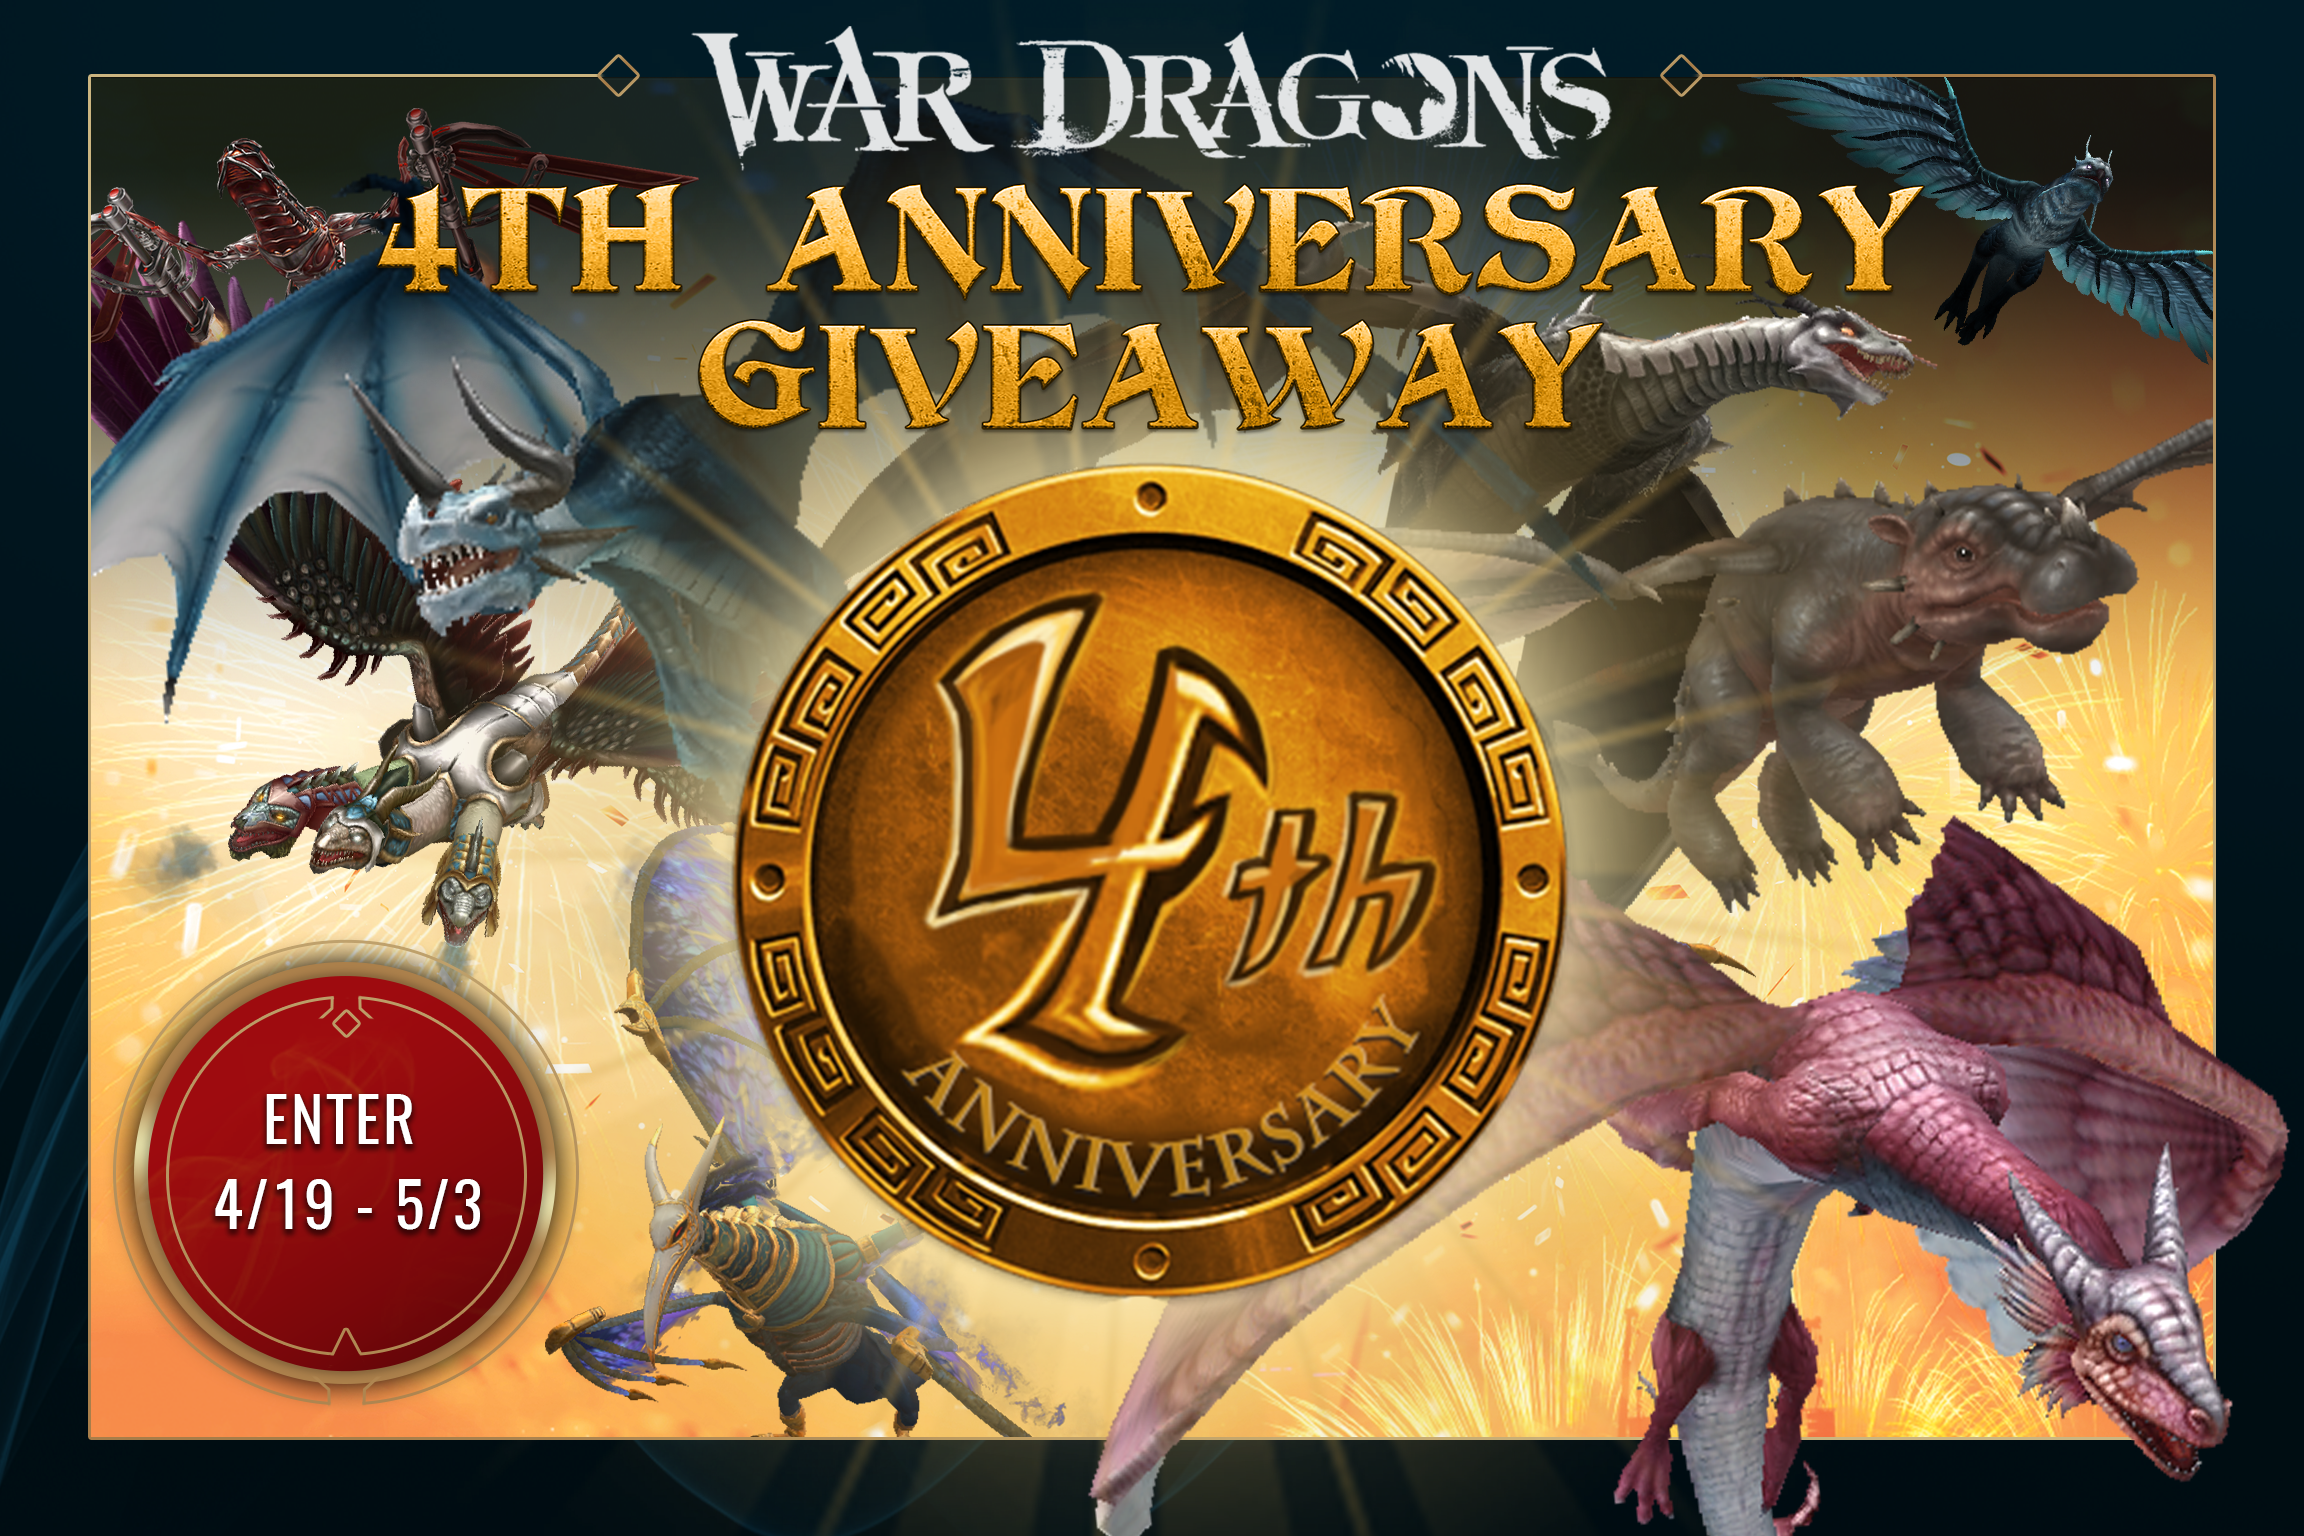 War Dragons 4th Anniversary Giveaway 2019